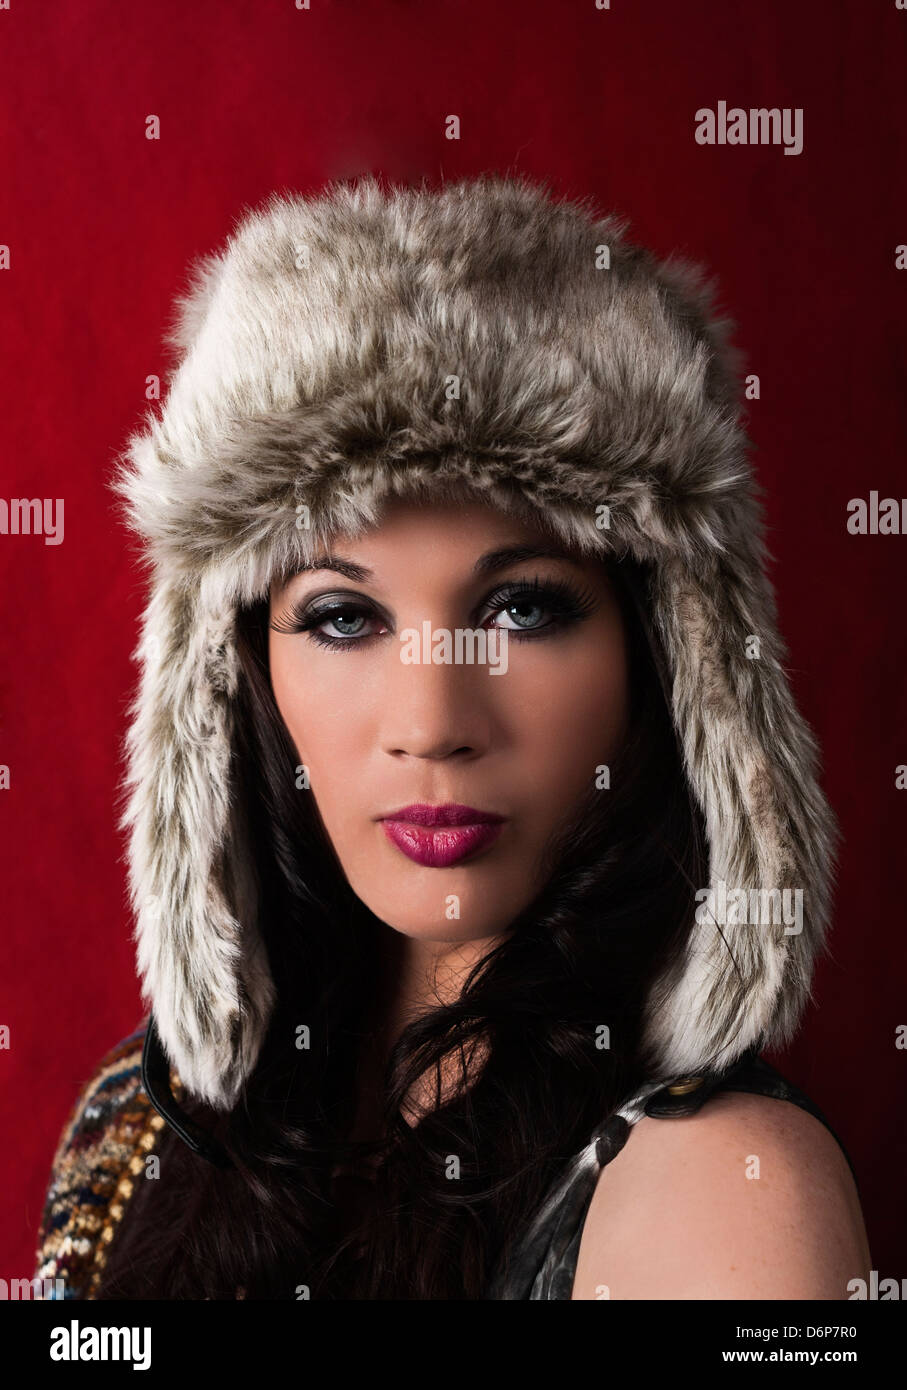 A FASHION MAGAZINE COVER SHOT PROJECT FEATURING A RUSSIAN HAT THEME b288c622356